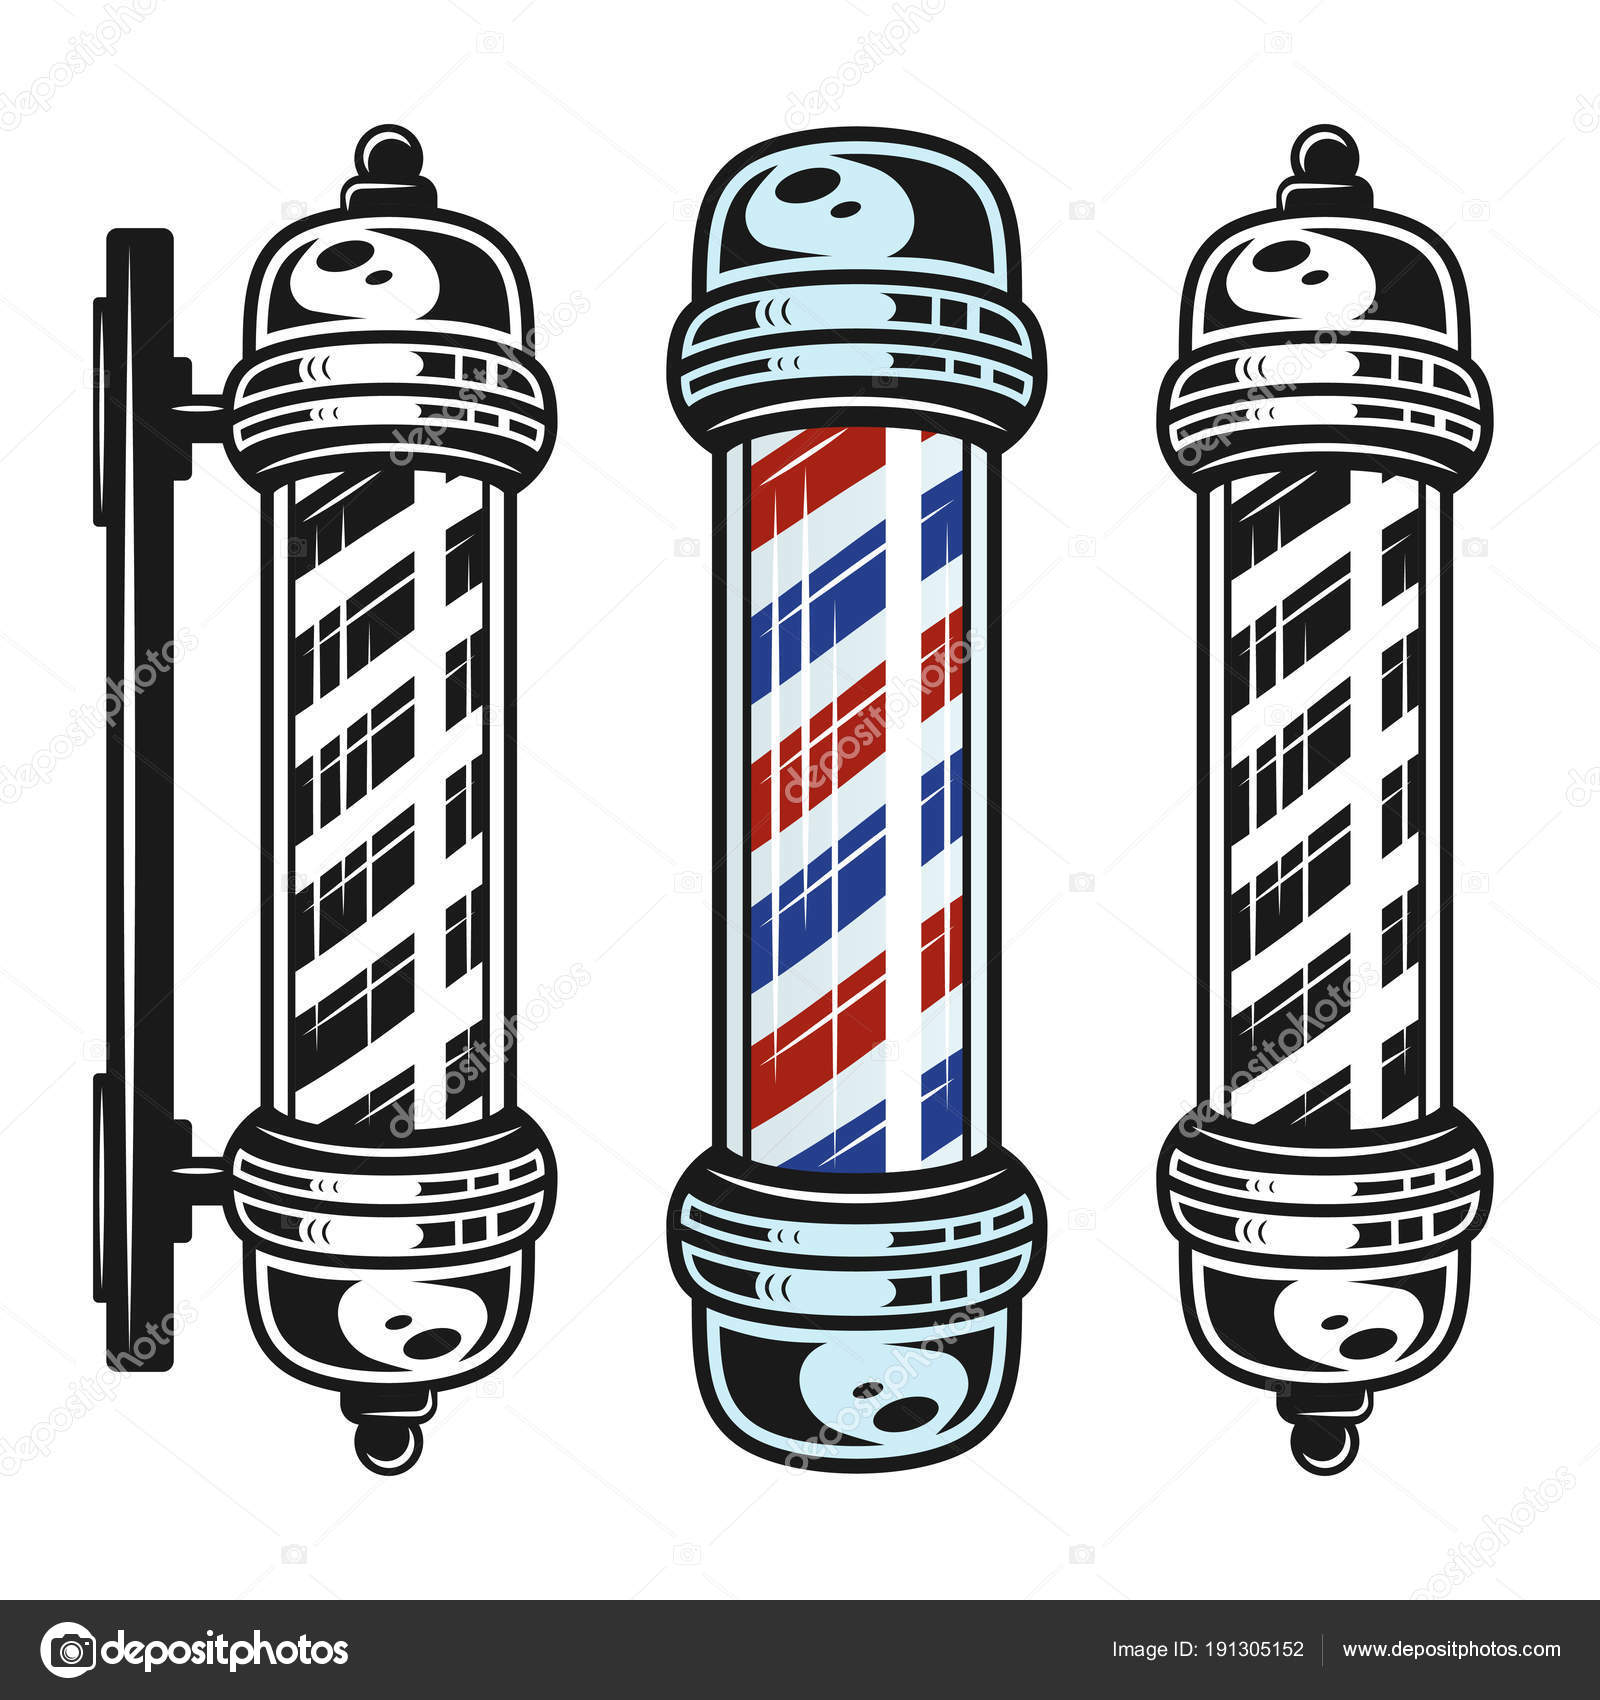 Barbershop Pole Set Of Three Style Objects In Vintage Monochrome Isolated On White Background Vector Illustration By Flat Enot